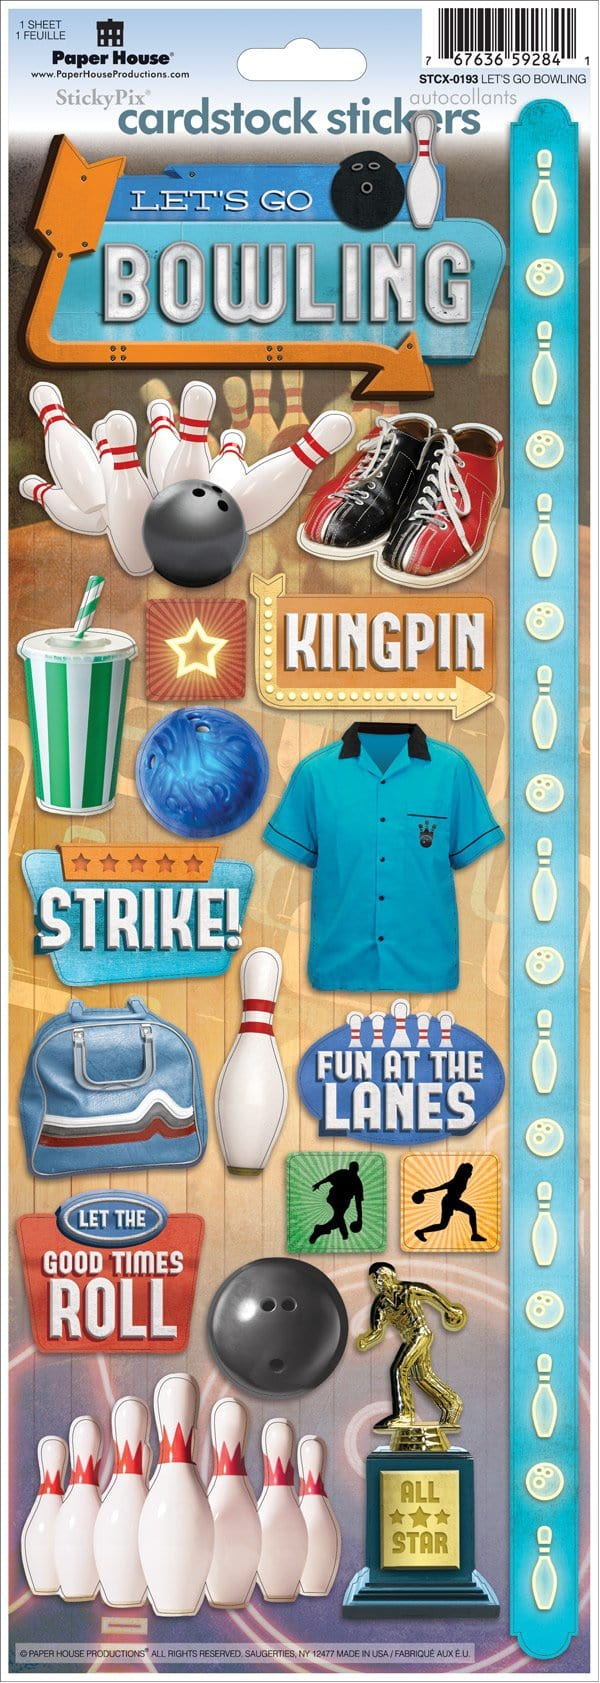 Let's Go Bowling Cardstock Stickers